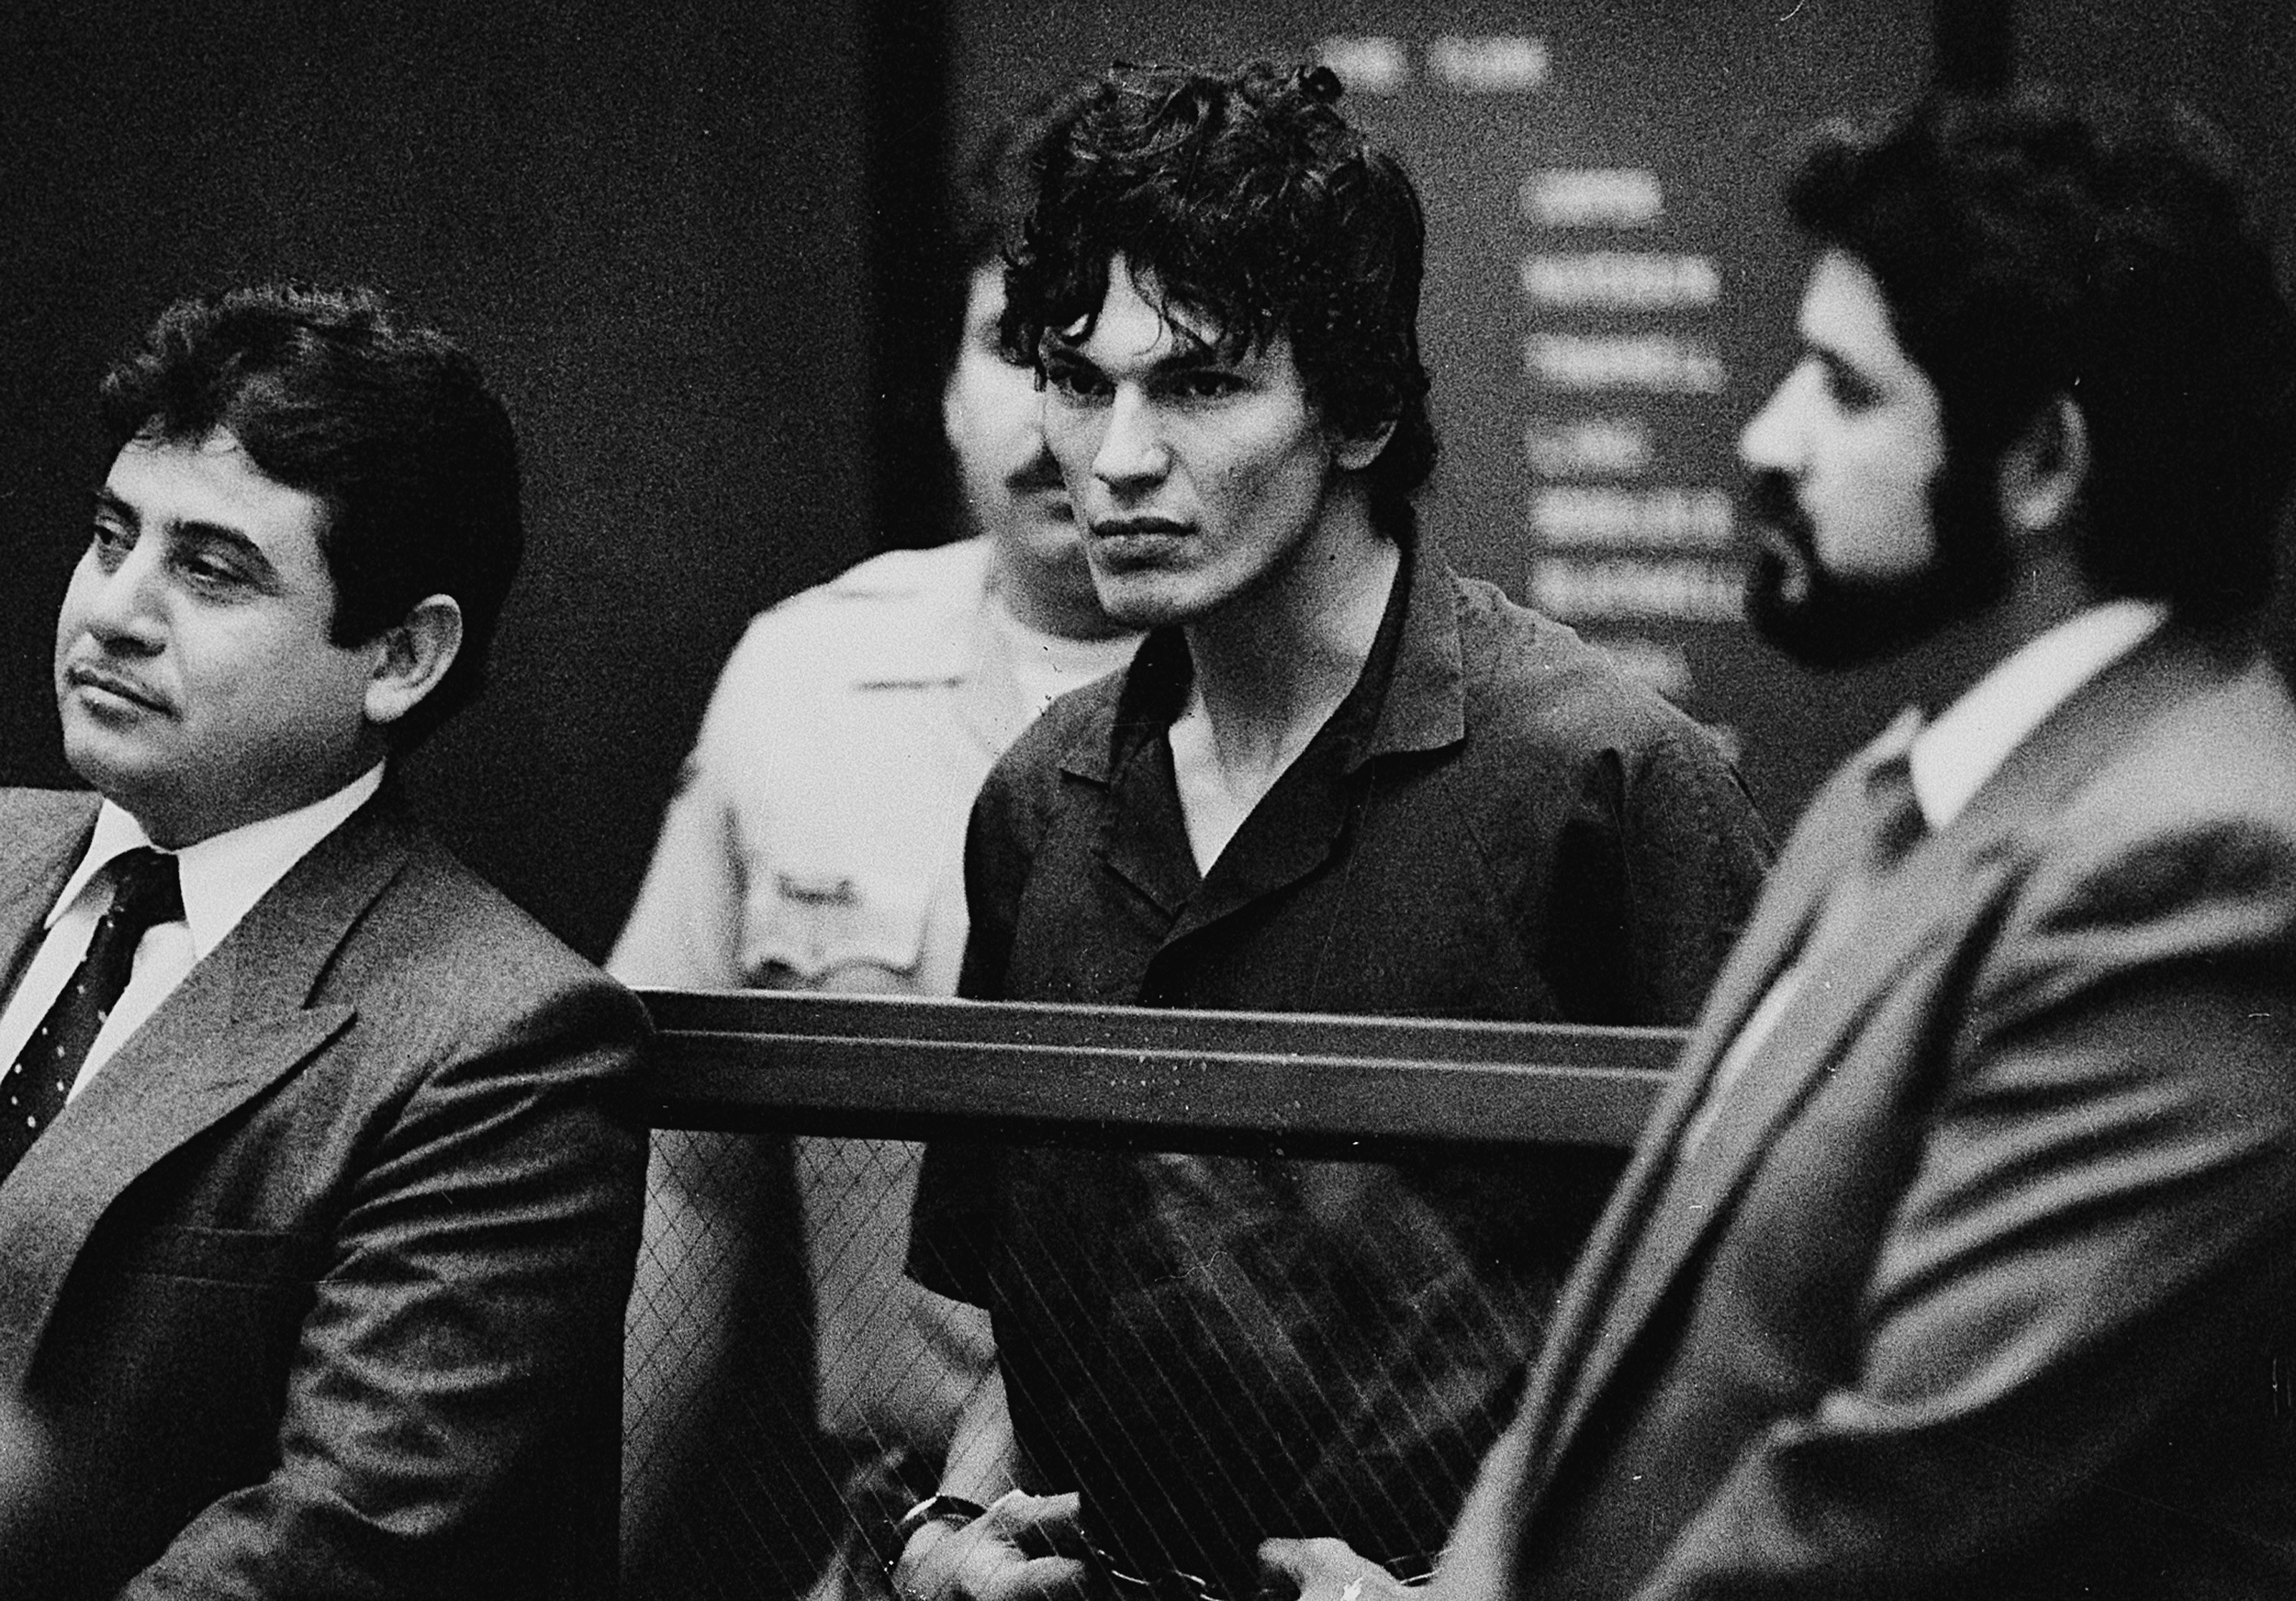 Black-and-white photo of Richard Ramirez during his trial.